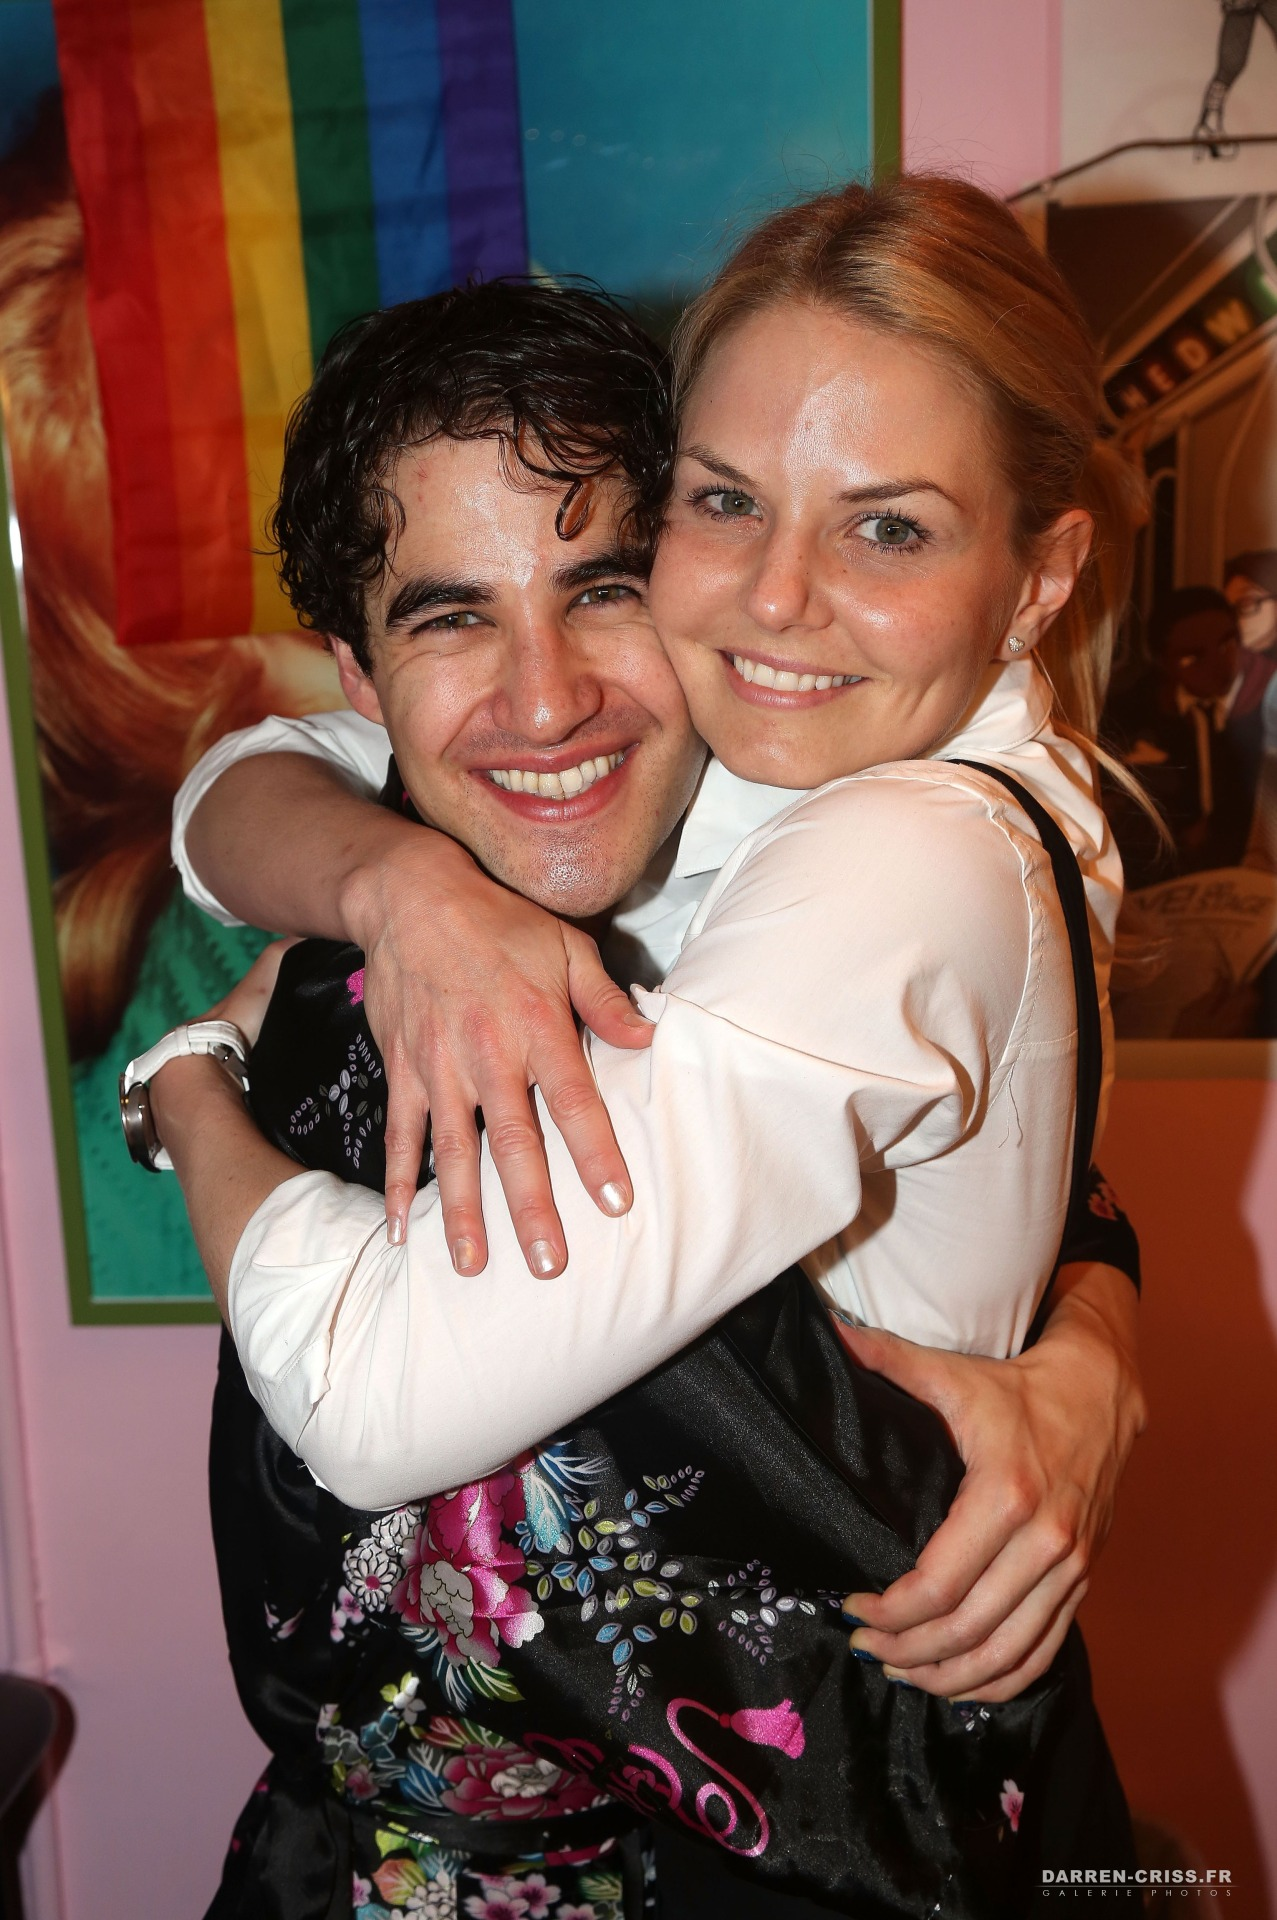 weddingpartyduties - Some of my favorite past photos/gifs of Darren - Page 2 Tumblr_nqpgot07Yr1qayexuo4_1280